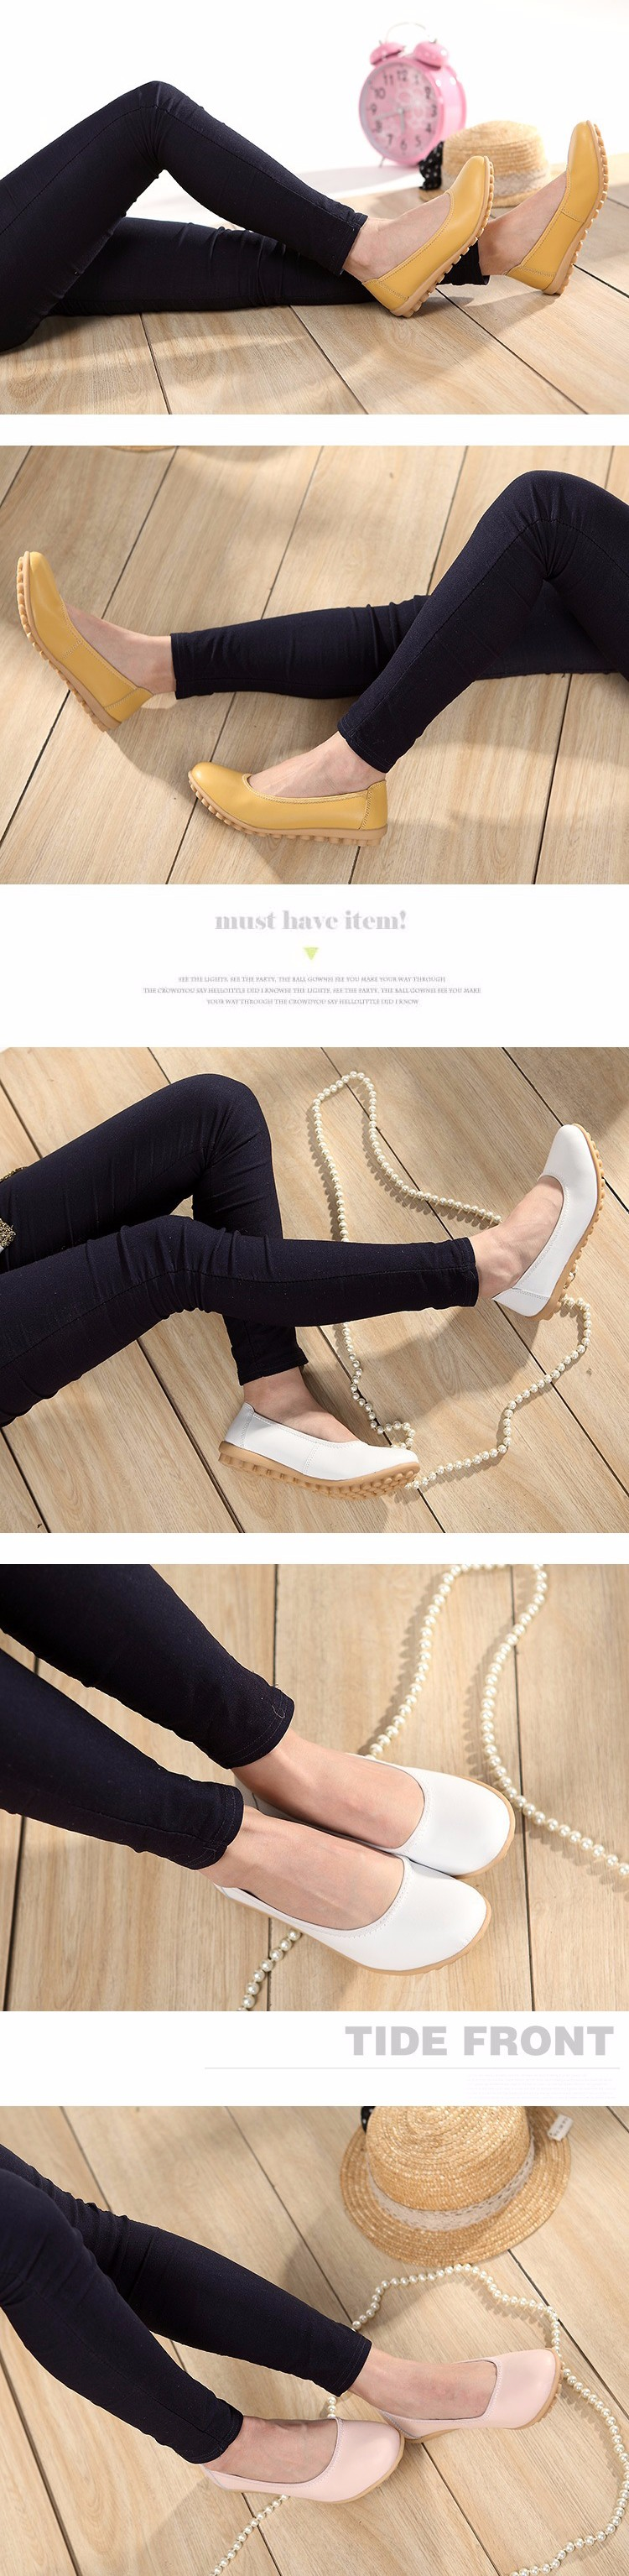 New 2016 Women Leather Shoes Slip-on Ballet Women Flat Comfort Shoes Woman Chaussure Homme Women Loafers BT94 (6)